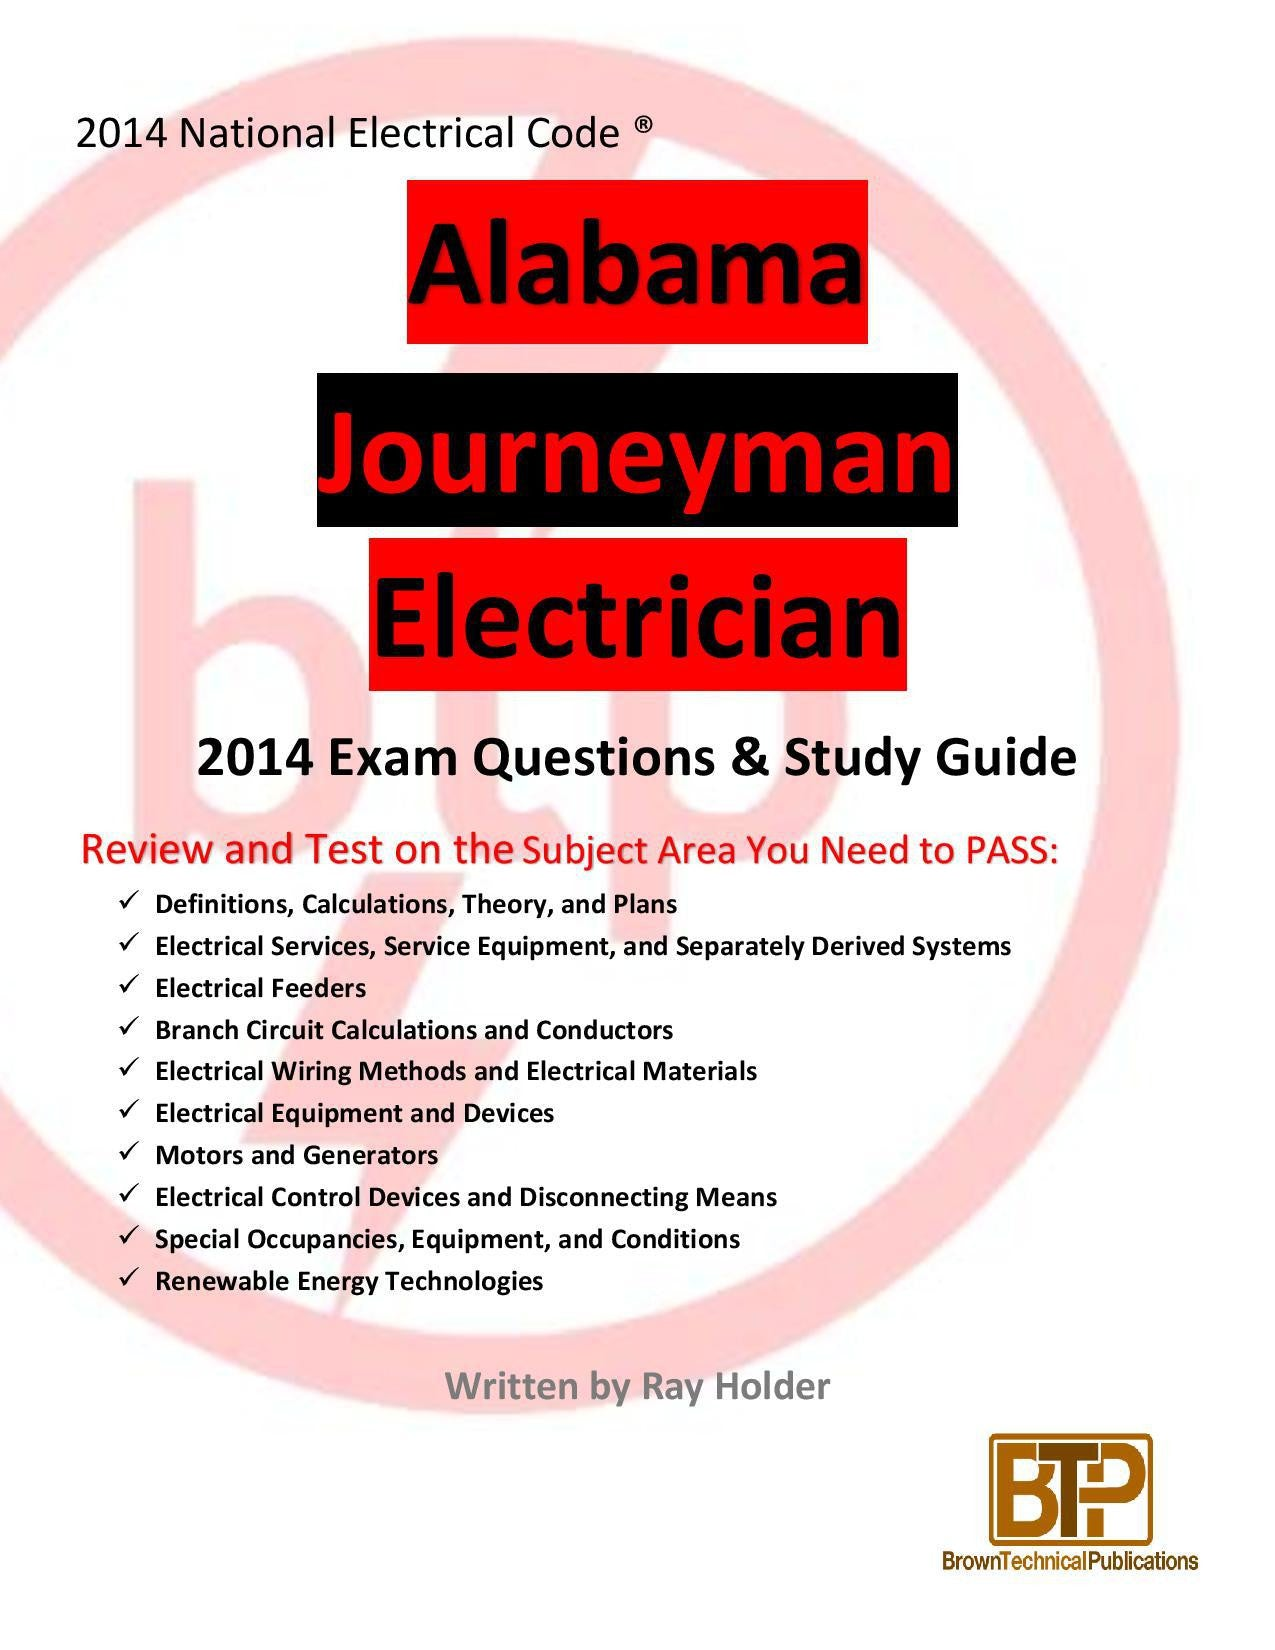 Alabama Journeyman Exam Information